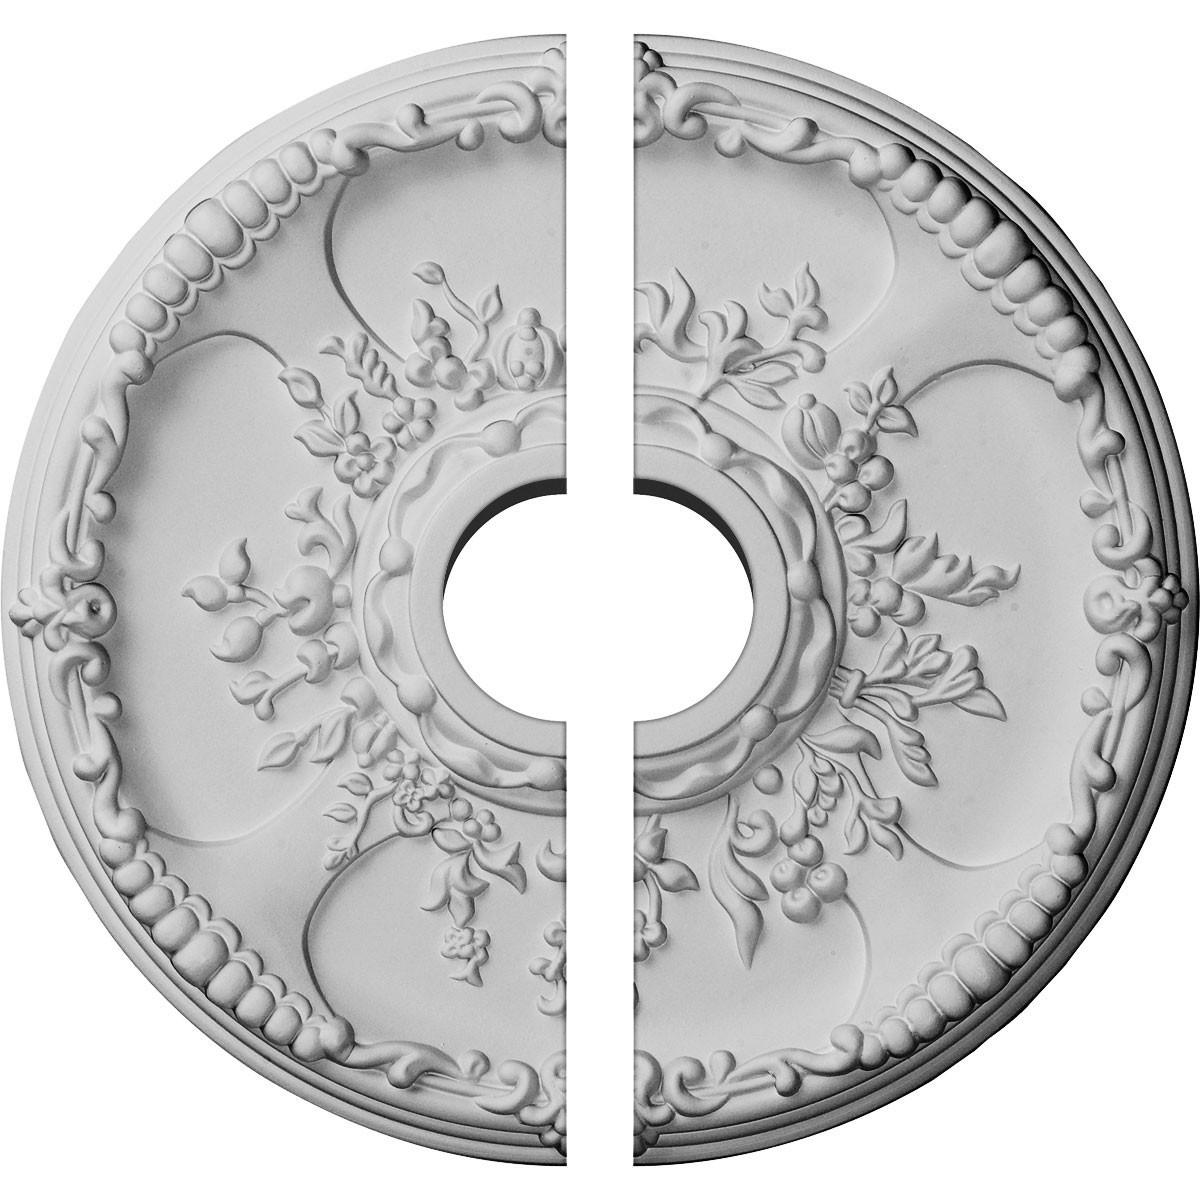 """EM-CM18SE2 - 18""""OD x 3 1/2""""ID x 1 3/8""""P Antioch Ceiling Medallion, Two Piece (Fits Canopies up to 3 1/2"""")"""